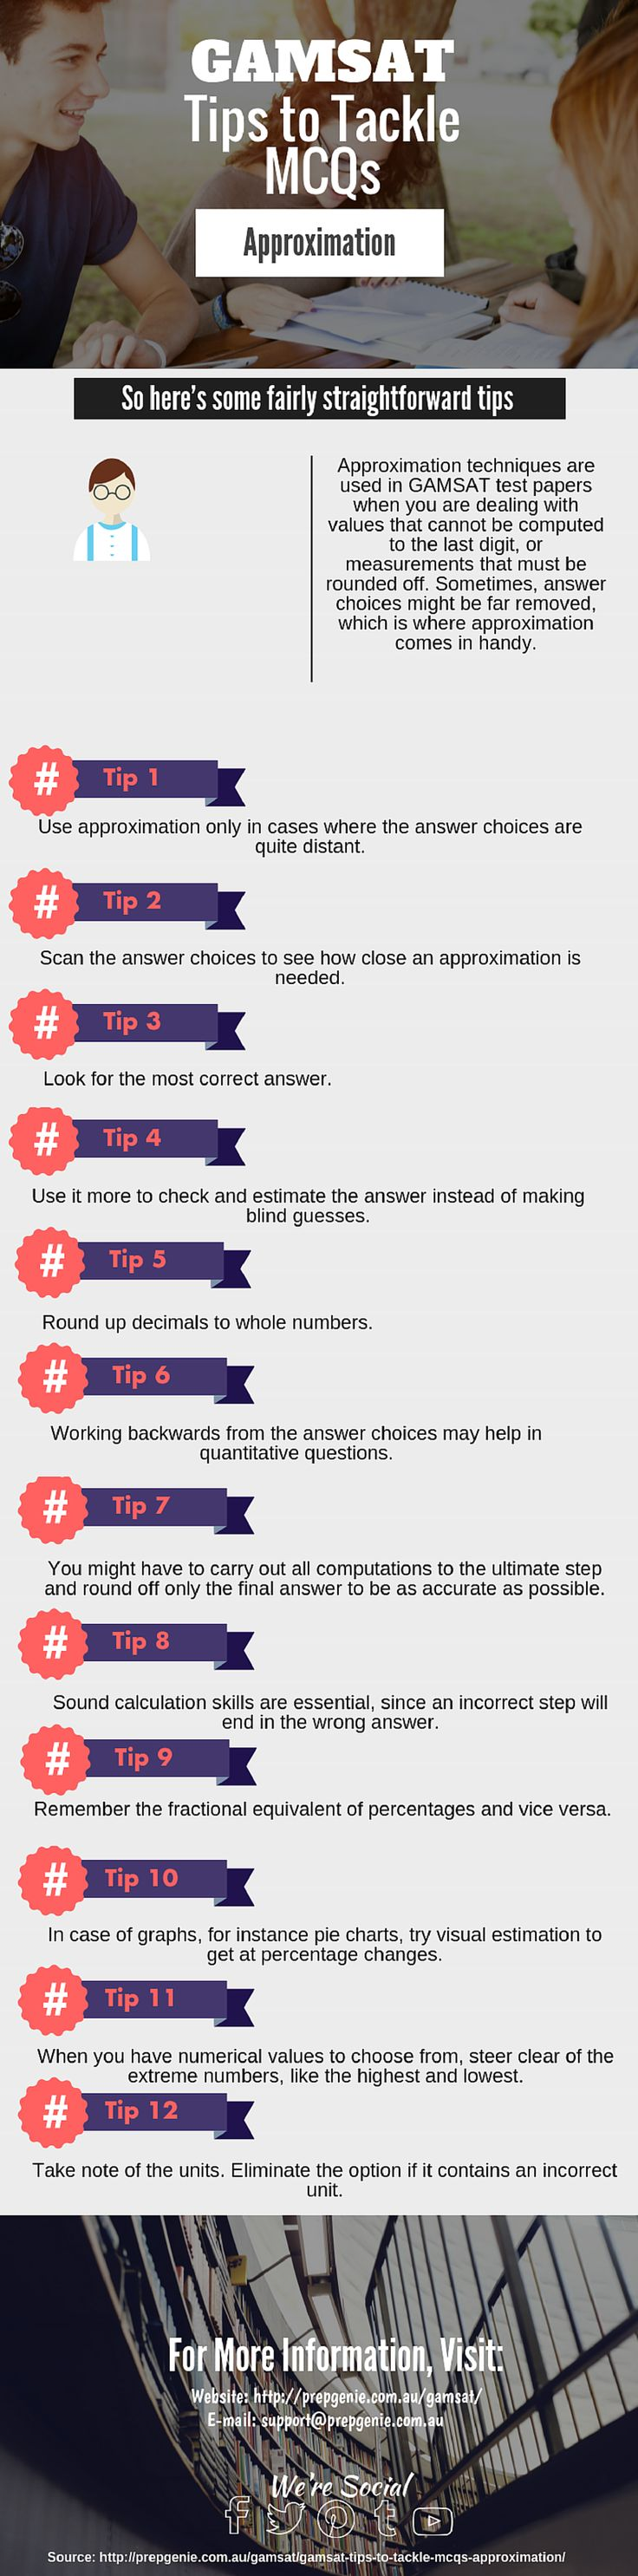 Infographic: #GAMSAT Approximation Tips  Blog Source: http://prepgenie.com.au/gamsat/gamsat-tips-to-tackle-mcqs-approximation/